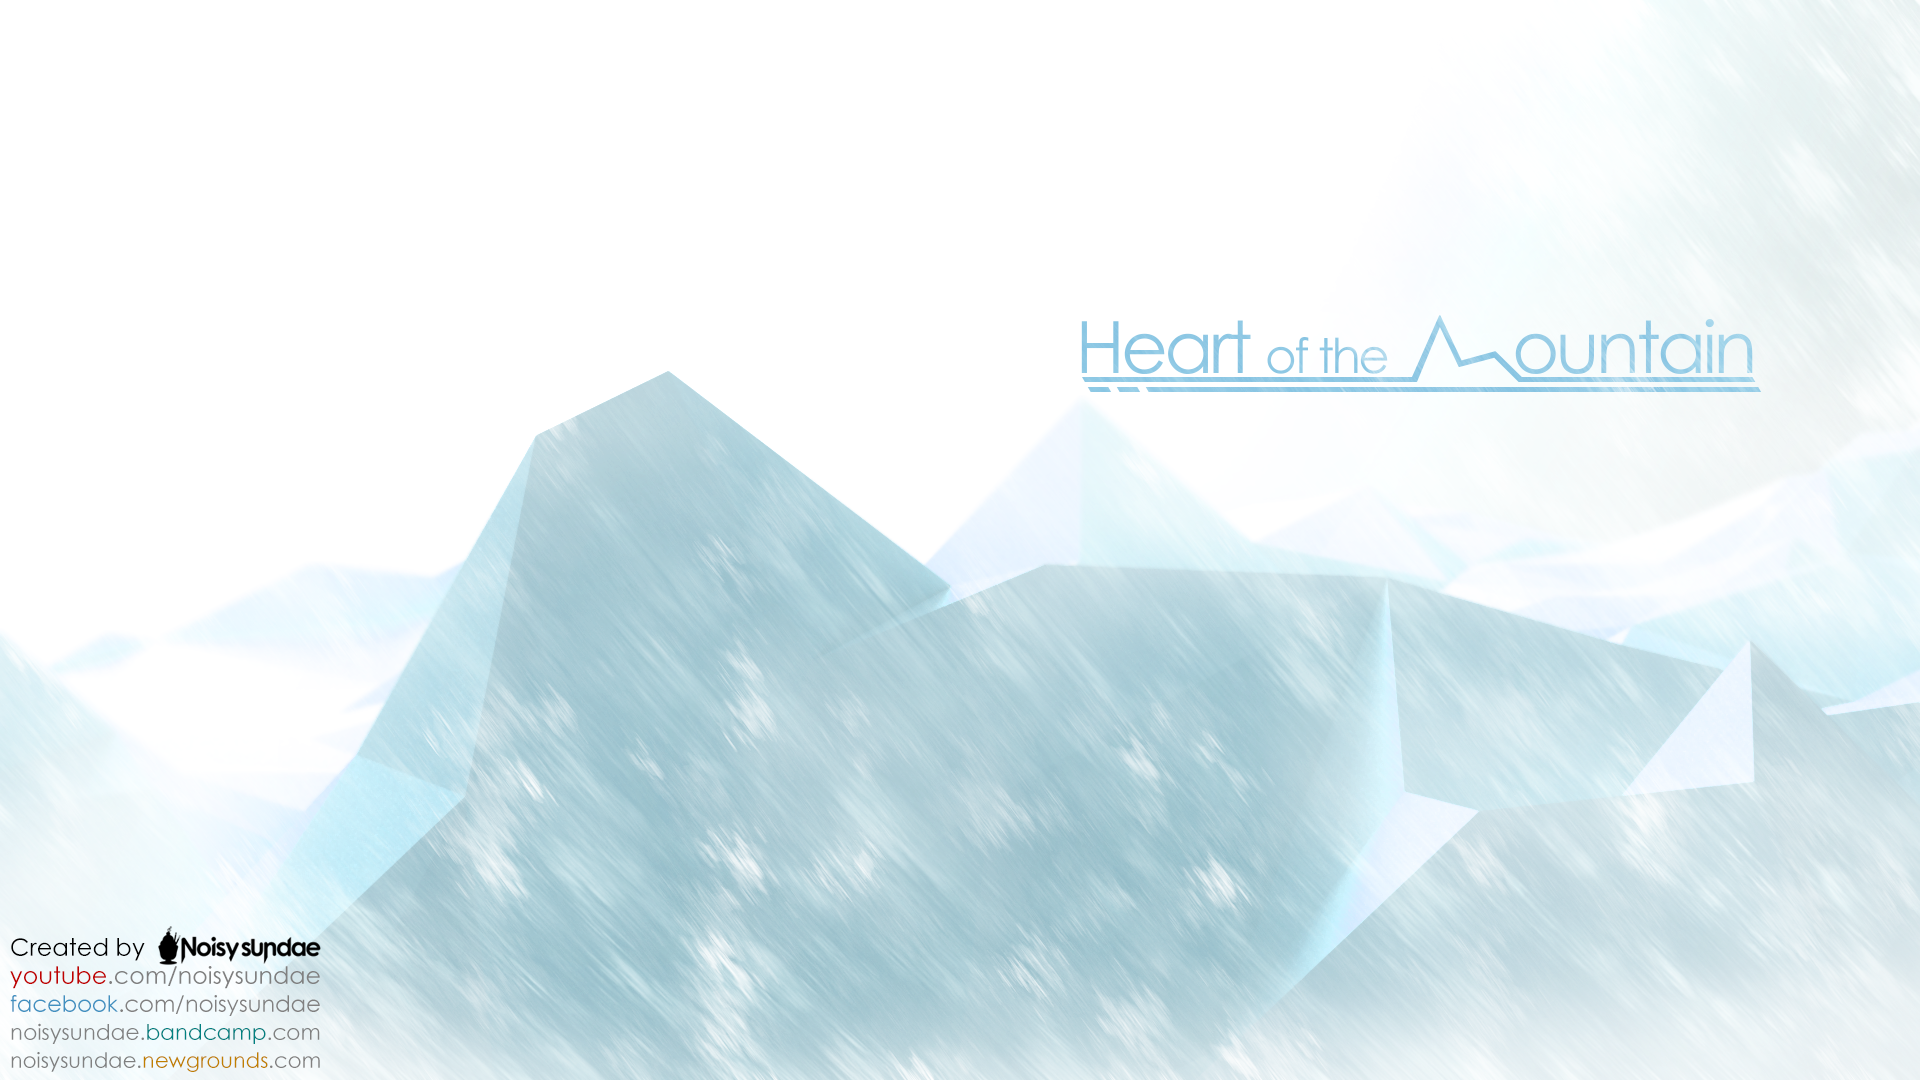 Noisysundae wallpaper - Heart of the mountain